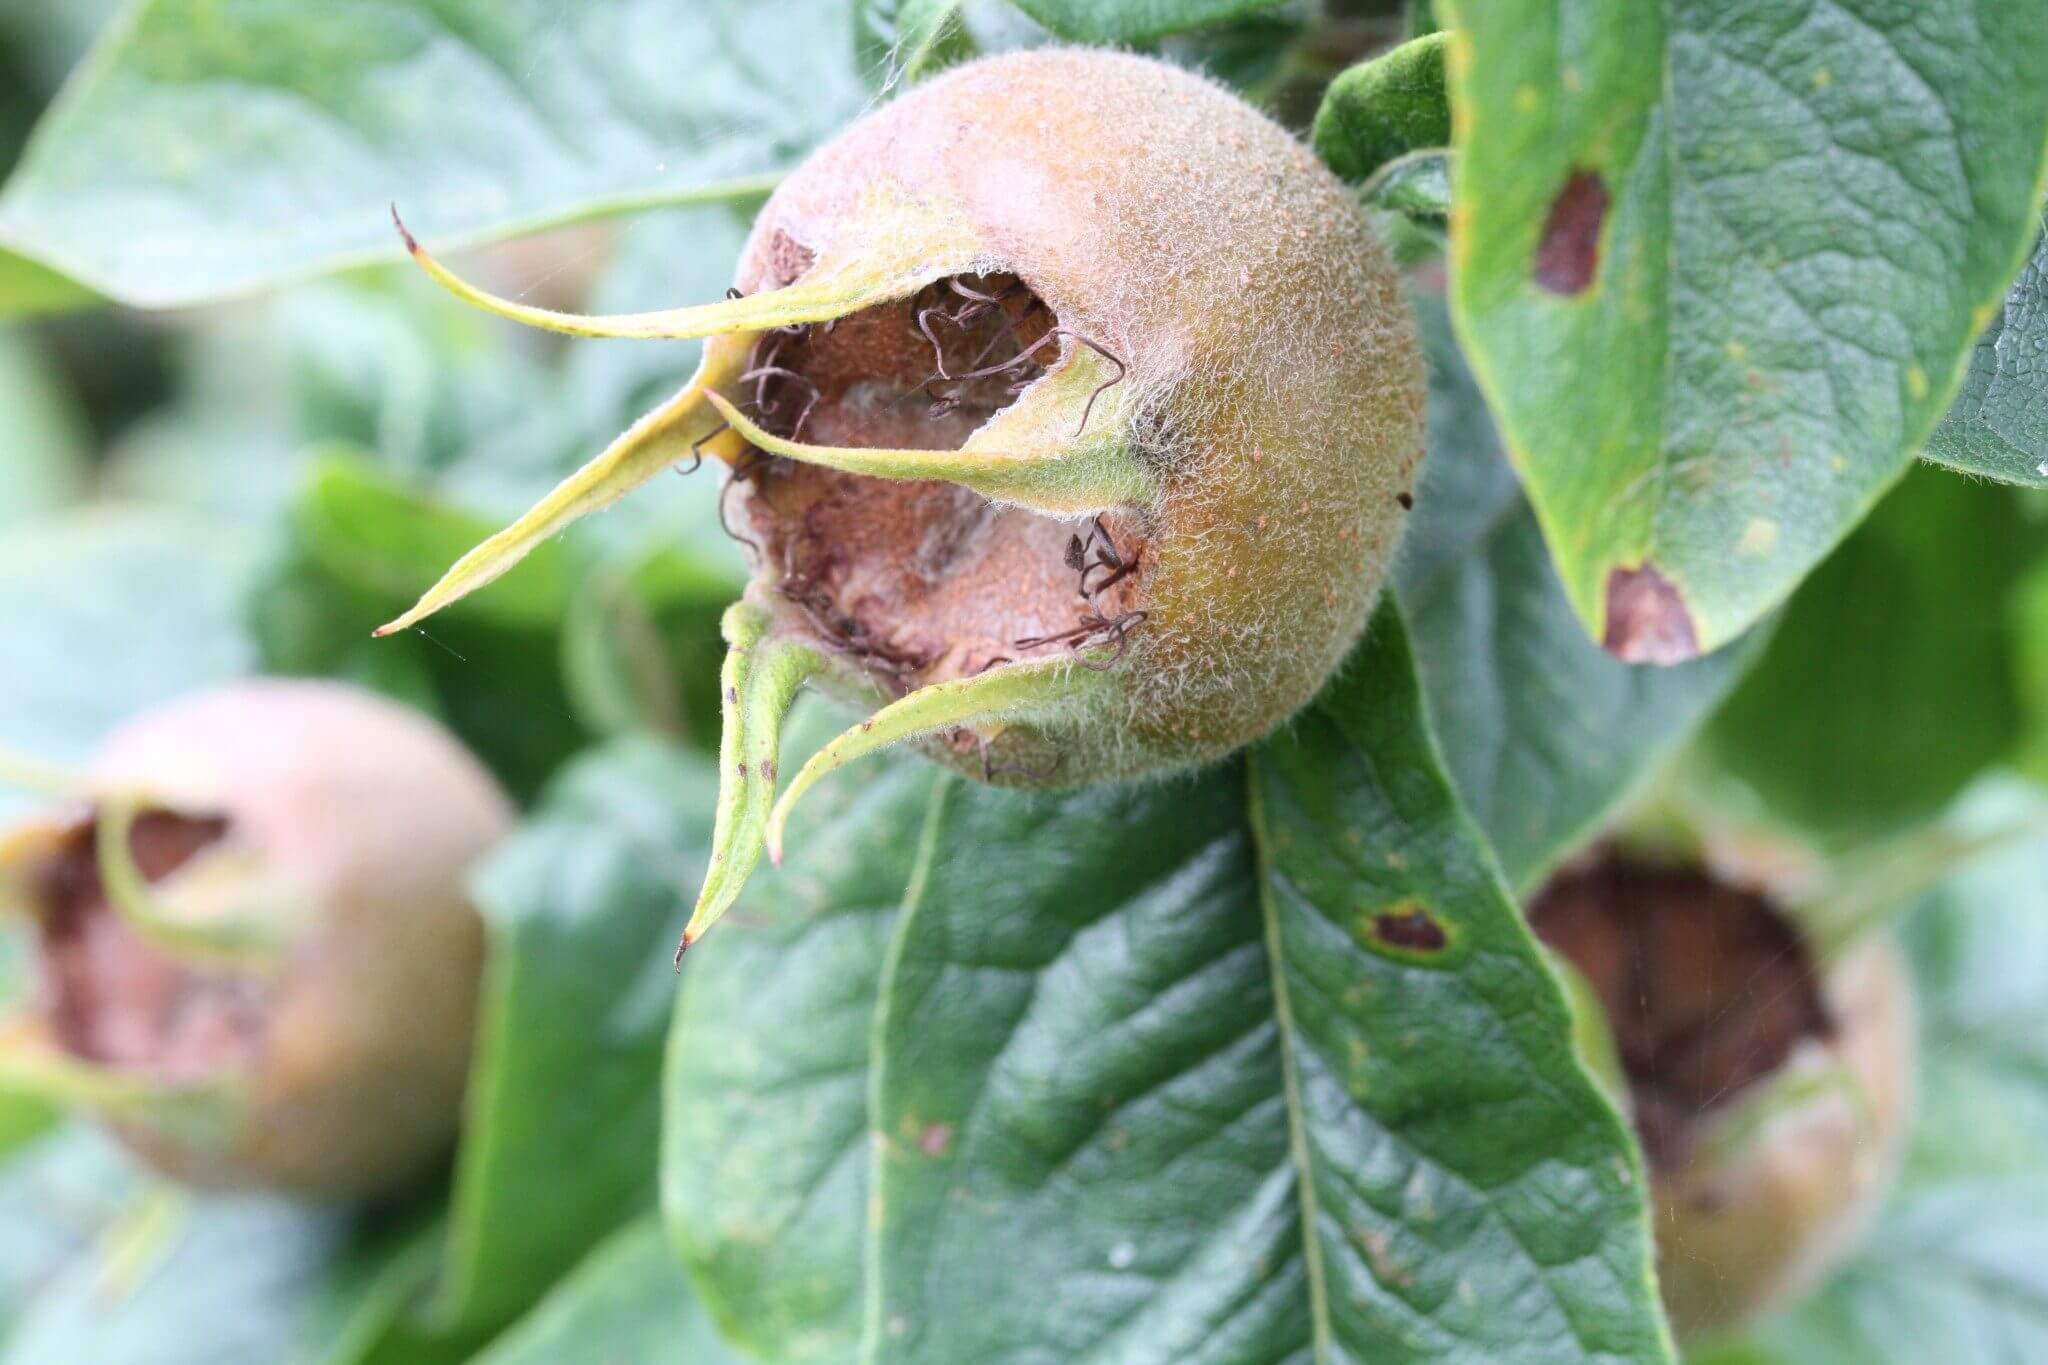 Monastic Medlars have to rot or 'blet' before being used